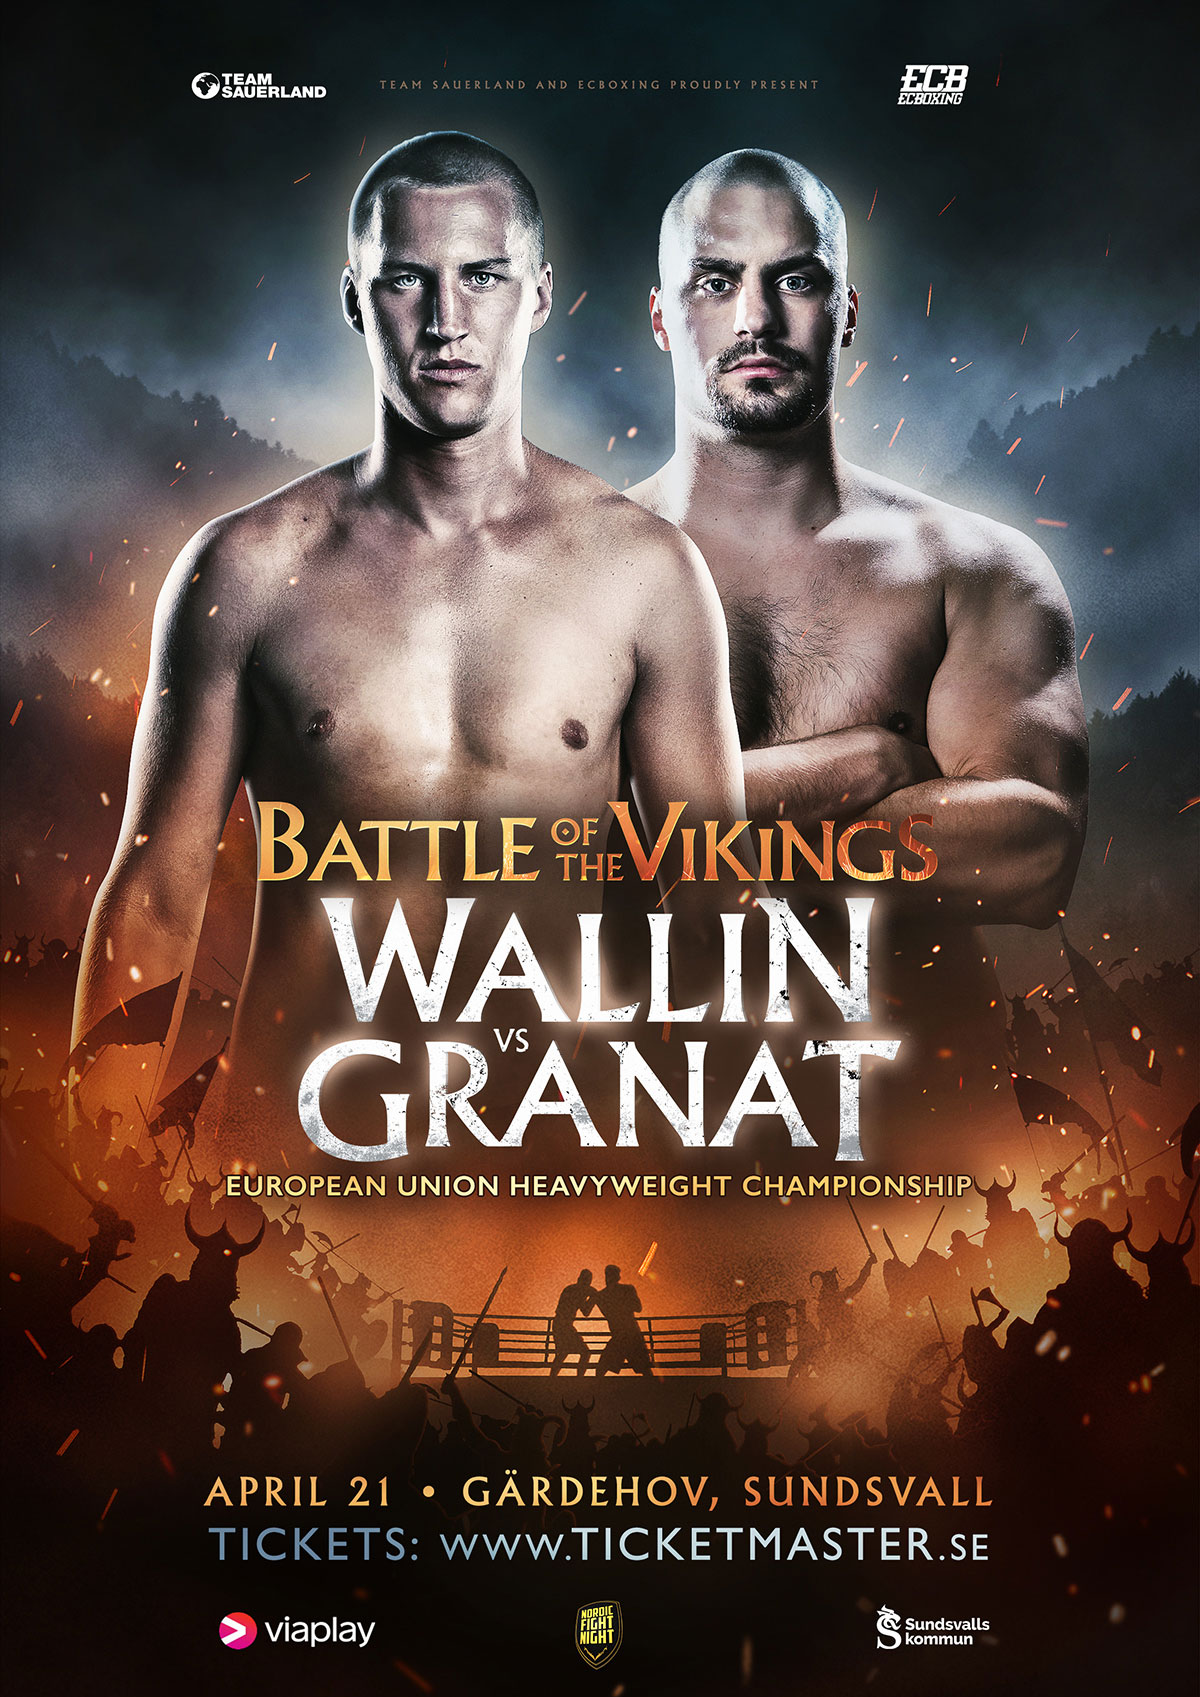 poster for the battle of the vikings heavyweight boxing fight in Sweden